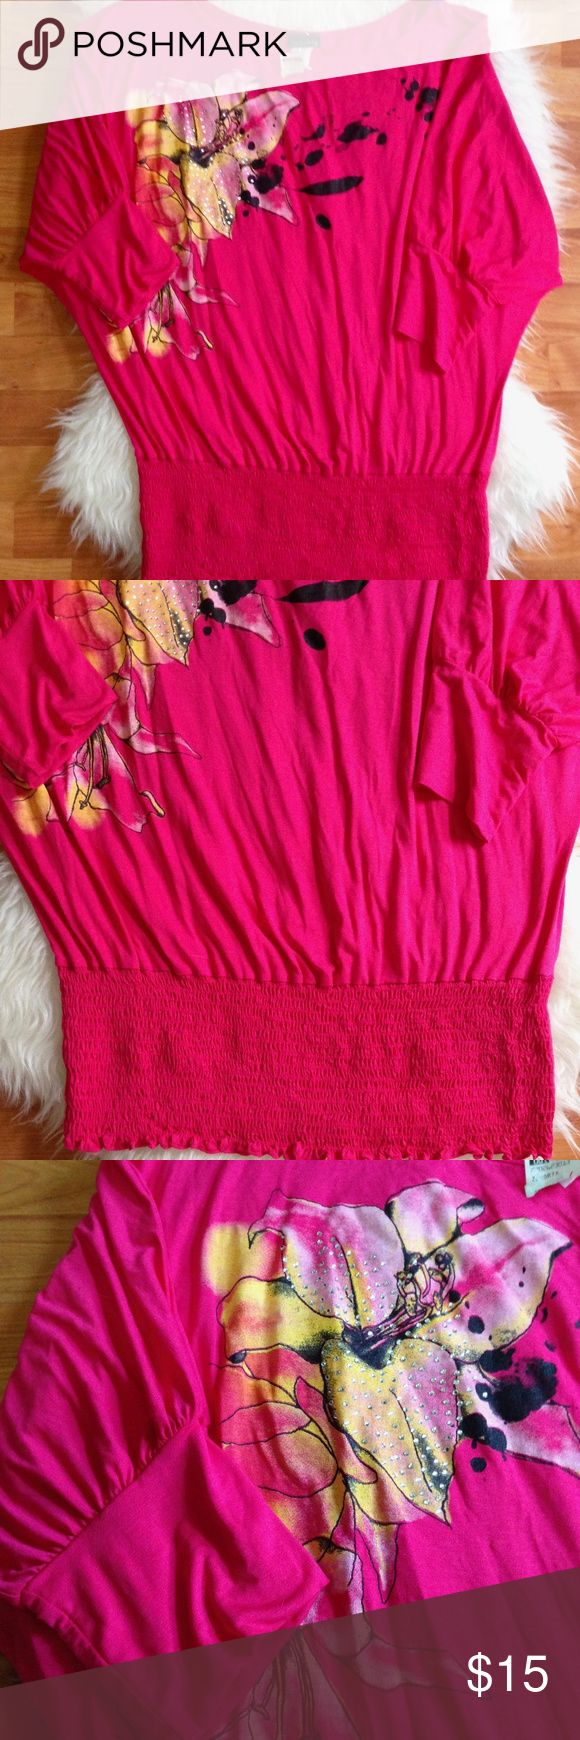 Xenobia Pink Short Sleeve Top Xenobia Pink Short Sleeve Top - Size 3X - Color: Pink - 95% Rayon/5% Spandex.  Lovely embellished design. In great condition and ready to wear.   Any questions, please feel free to ask. Zenobia Tops Blouses